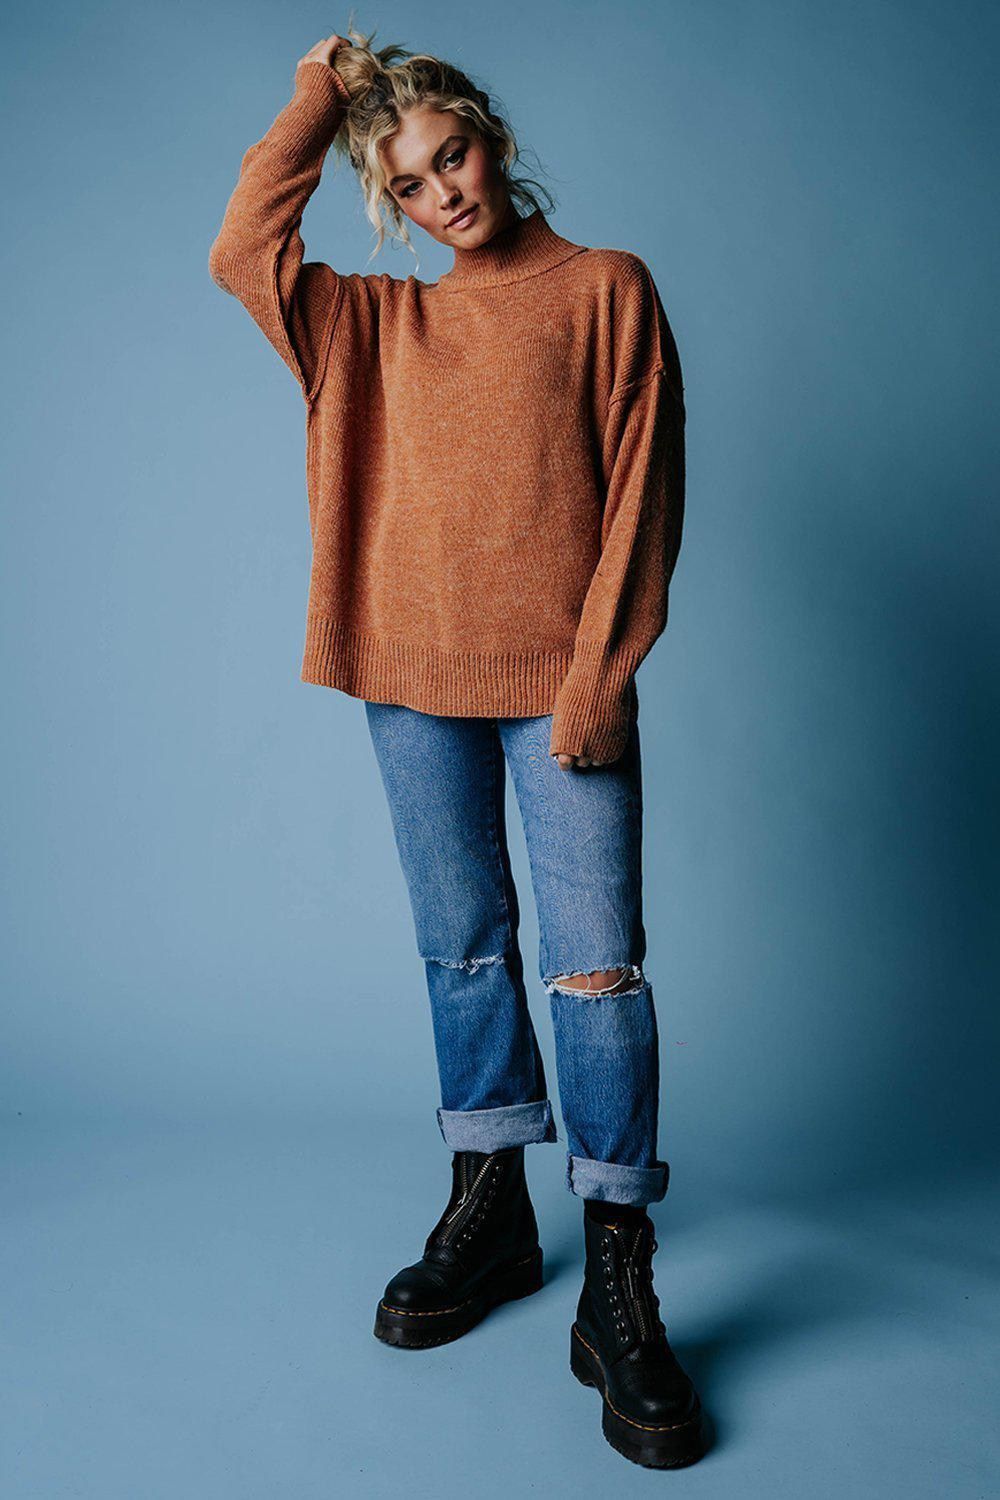 best_seller, One Man Show Pullover in Camel, Top, women's clothing, dresses, skirts, coats, jackets, shoes, boots, tops, tee shirts, jeans, free people, levi's, rollas, jumpsuits, bottoms, tops, sweaters, pullovers, pants, shorts, sweats,.